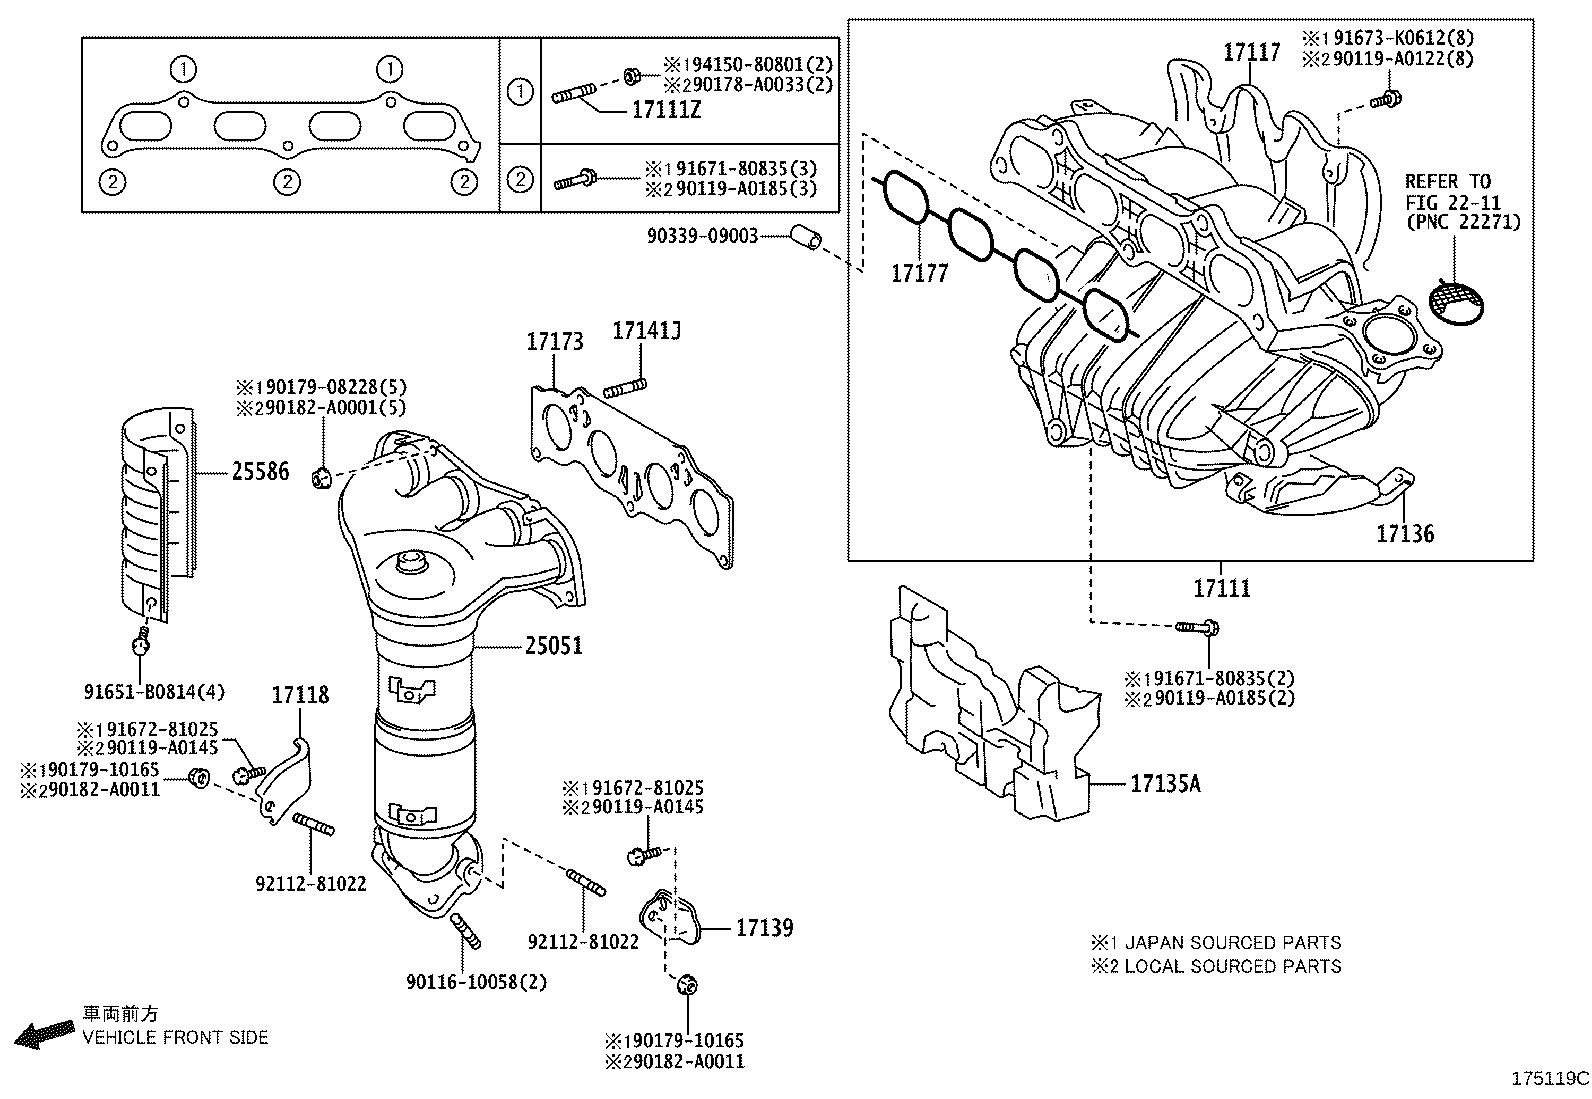 Toyota Camry Insulator Intake Pipe Exhaust Engine